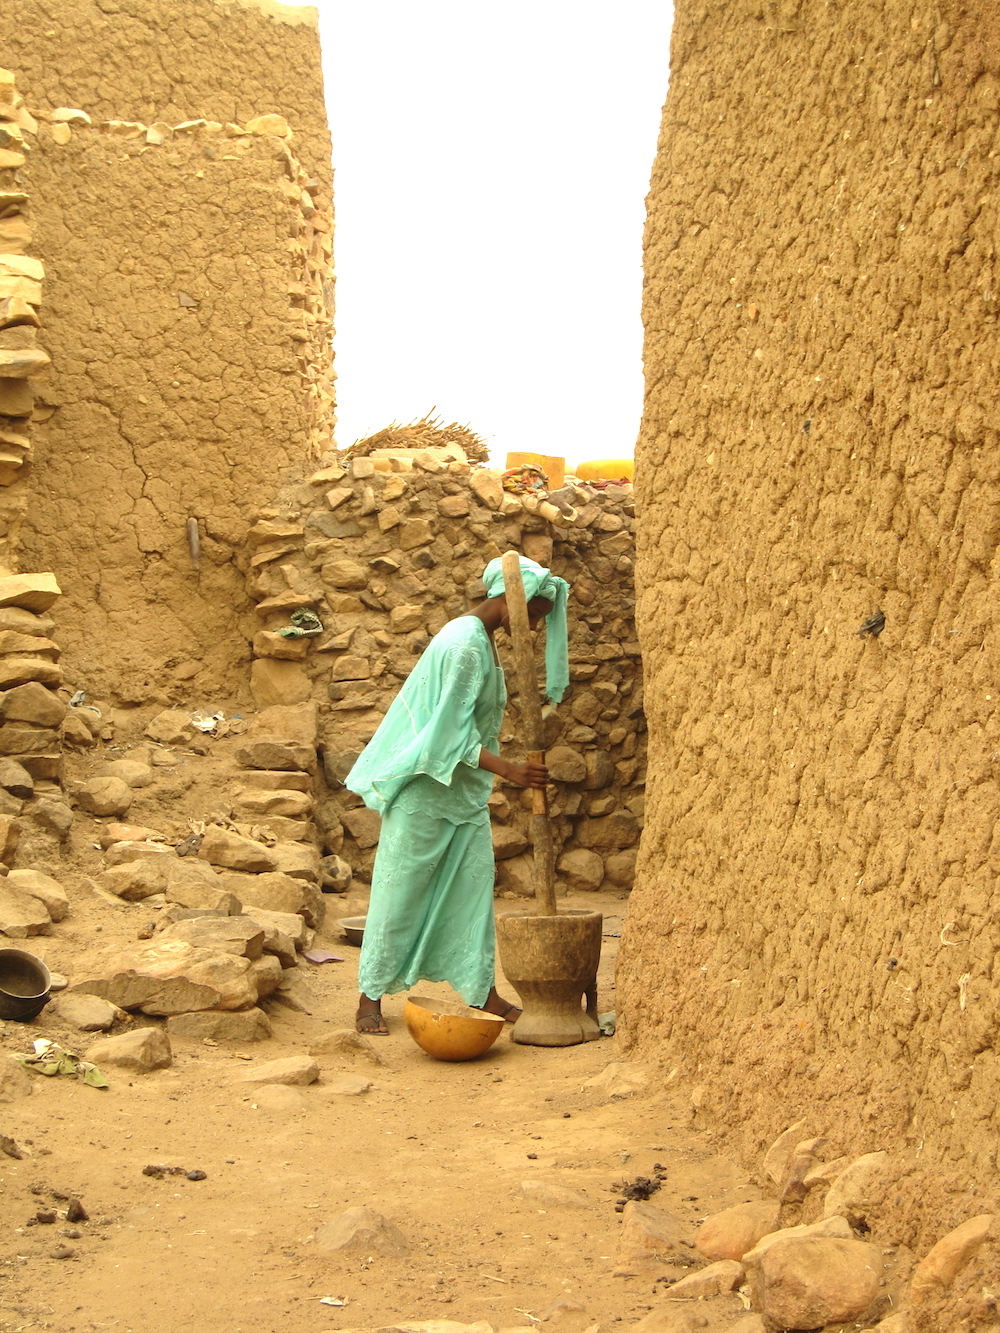 A woman prepares artisanal beer in a street of Hombori, Mali. Photo: Patti Neves